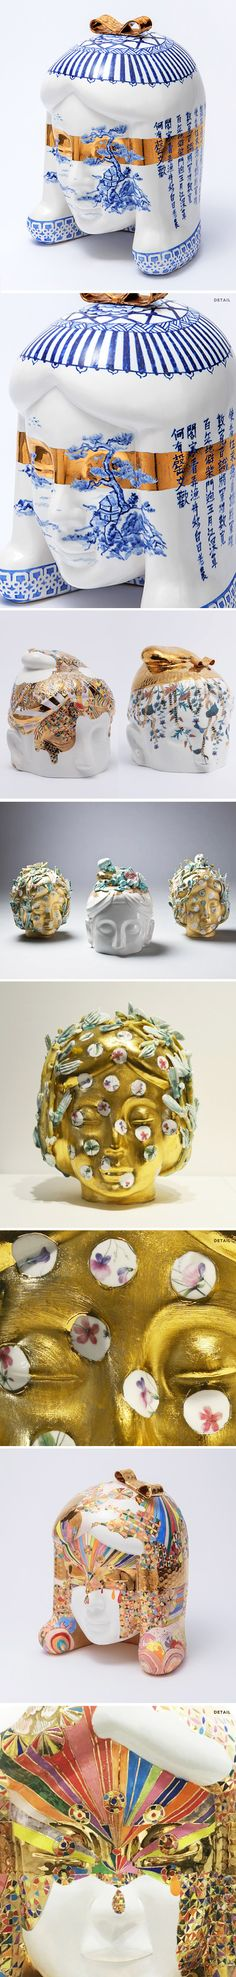 ceramics by yunhee lee